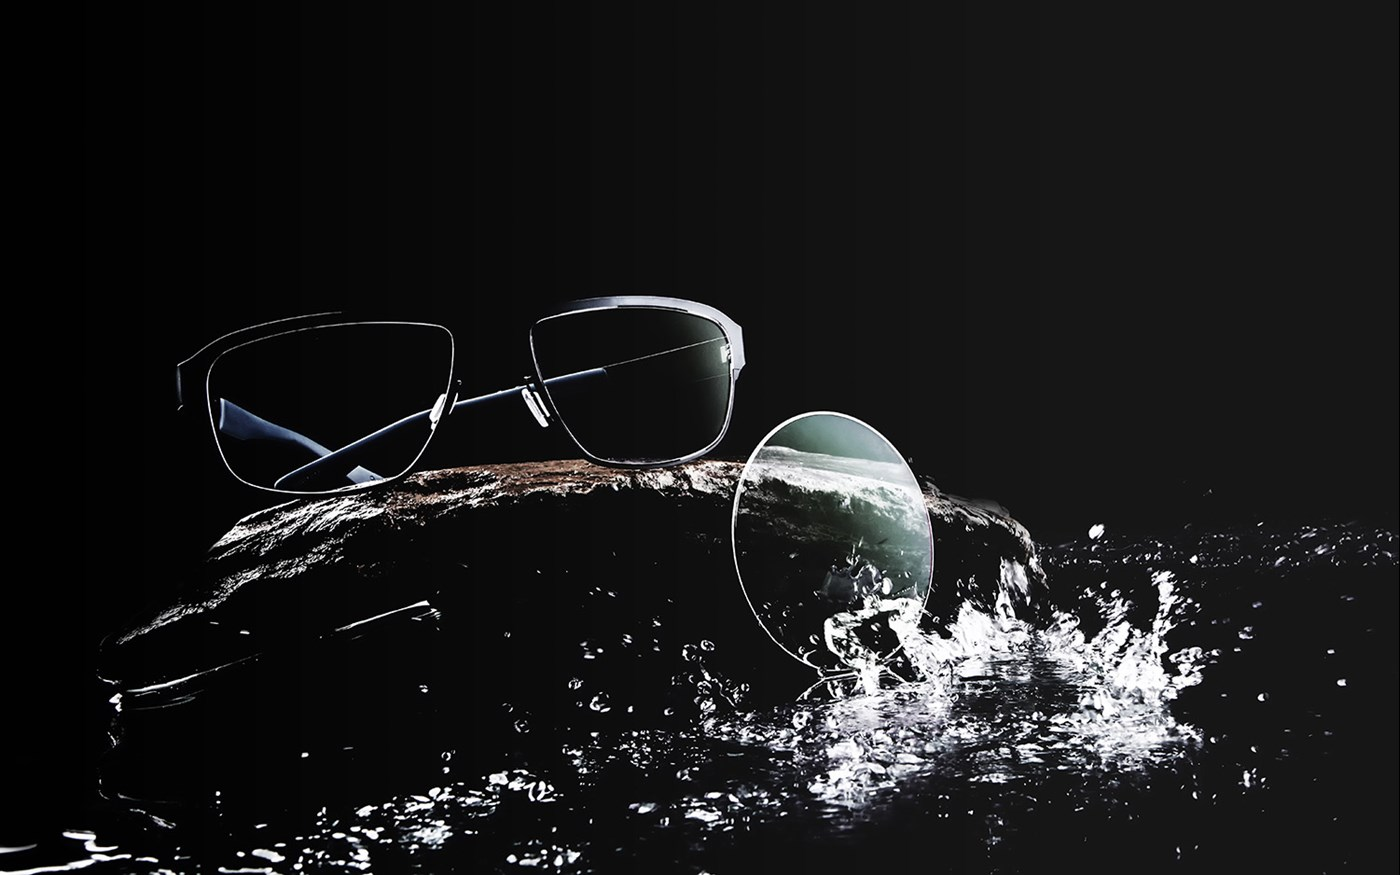 Eyeglasses and lens being splashed with water on a black background